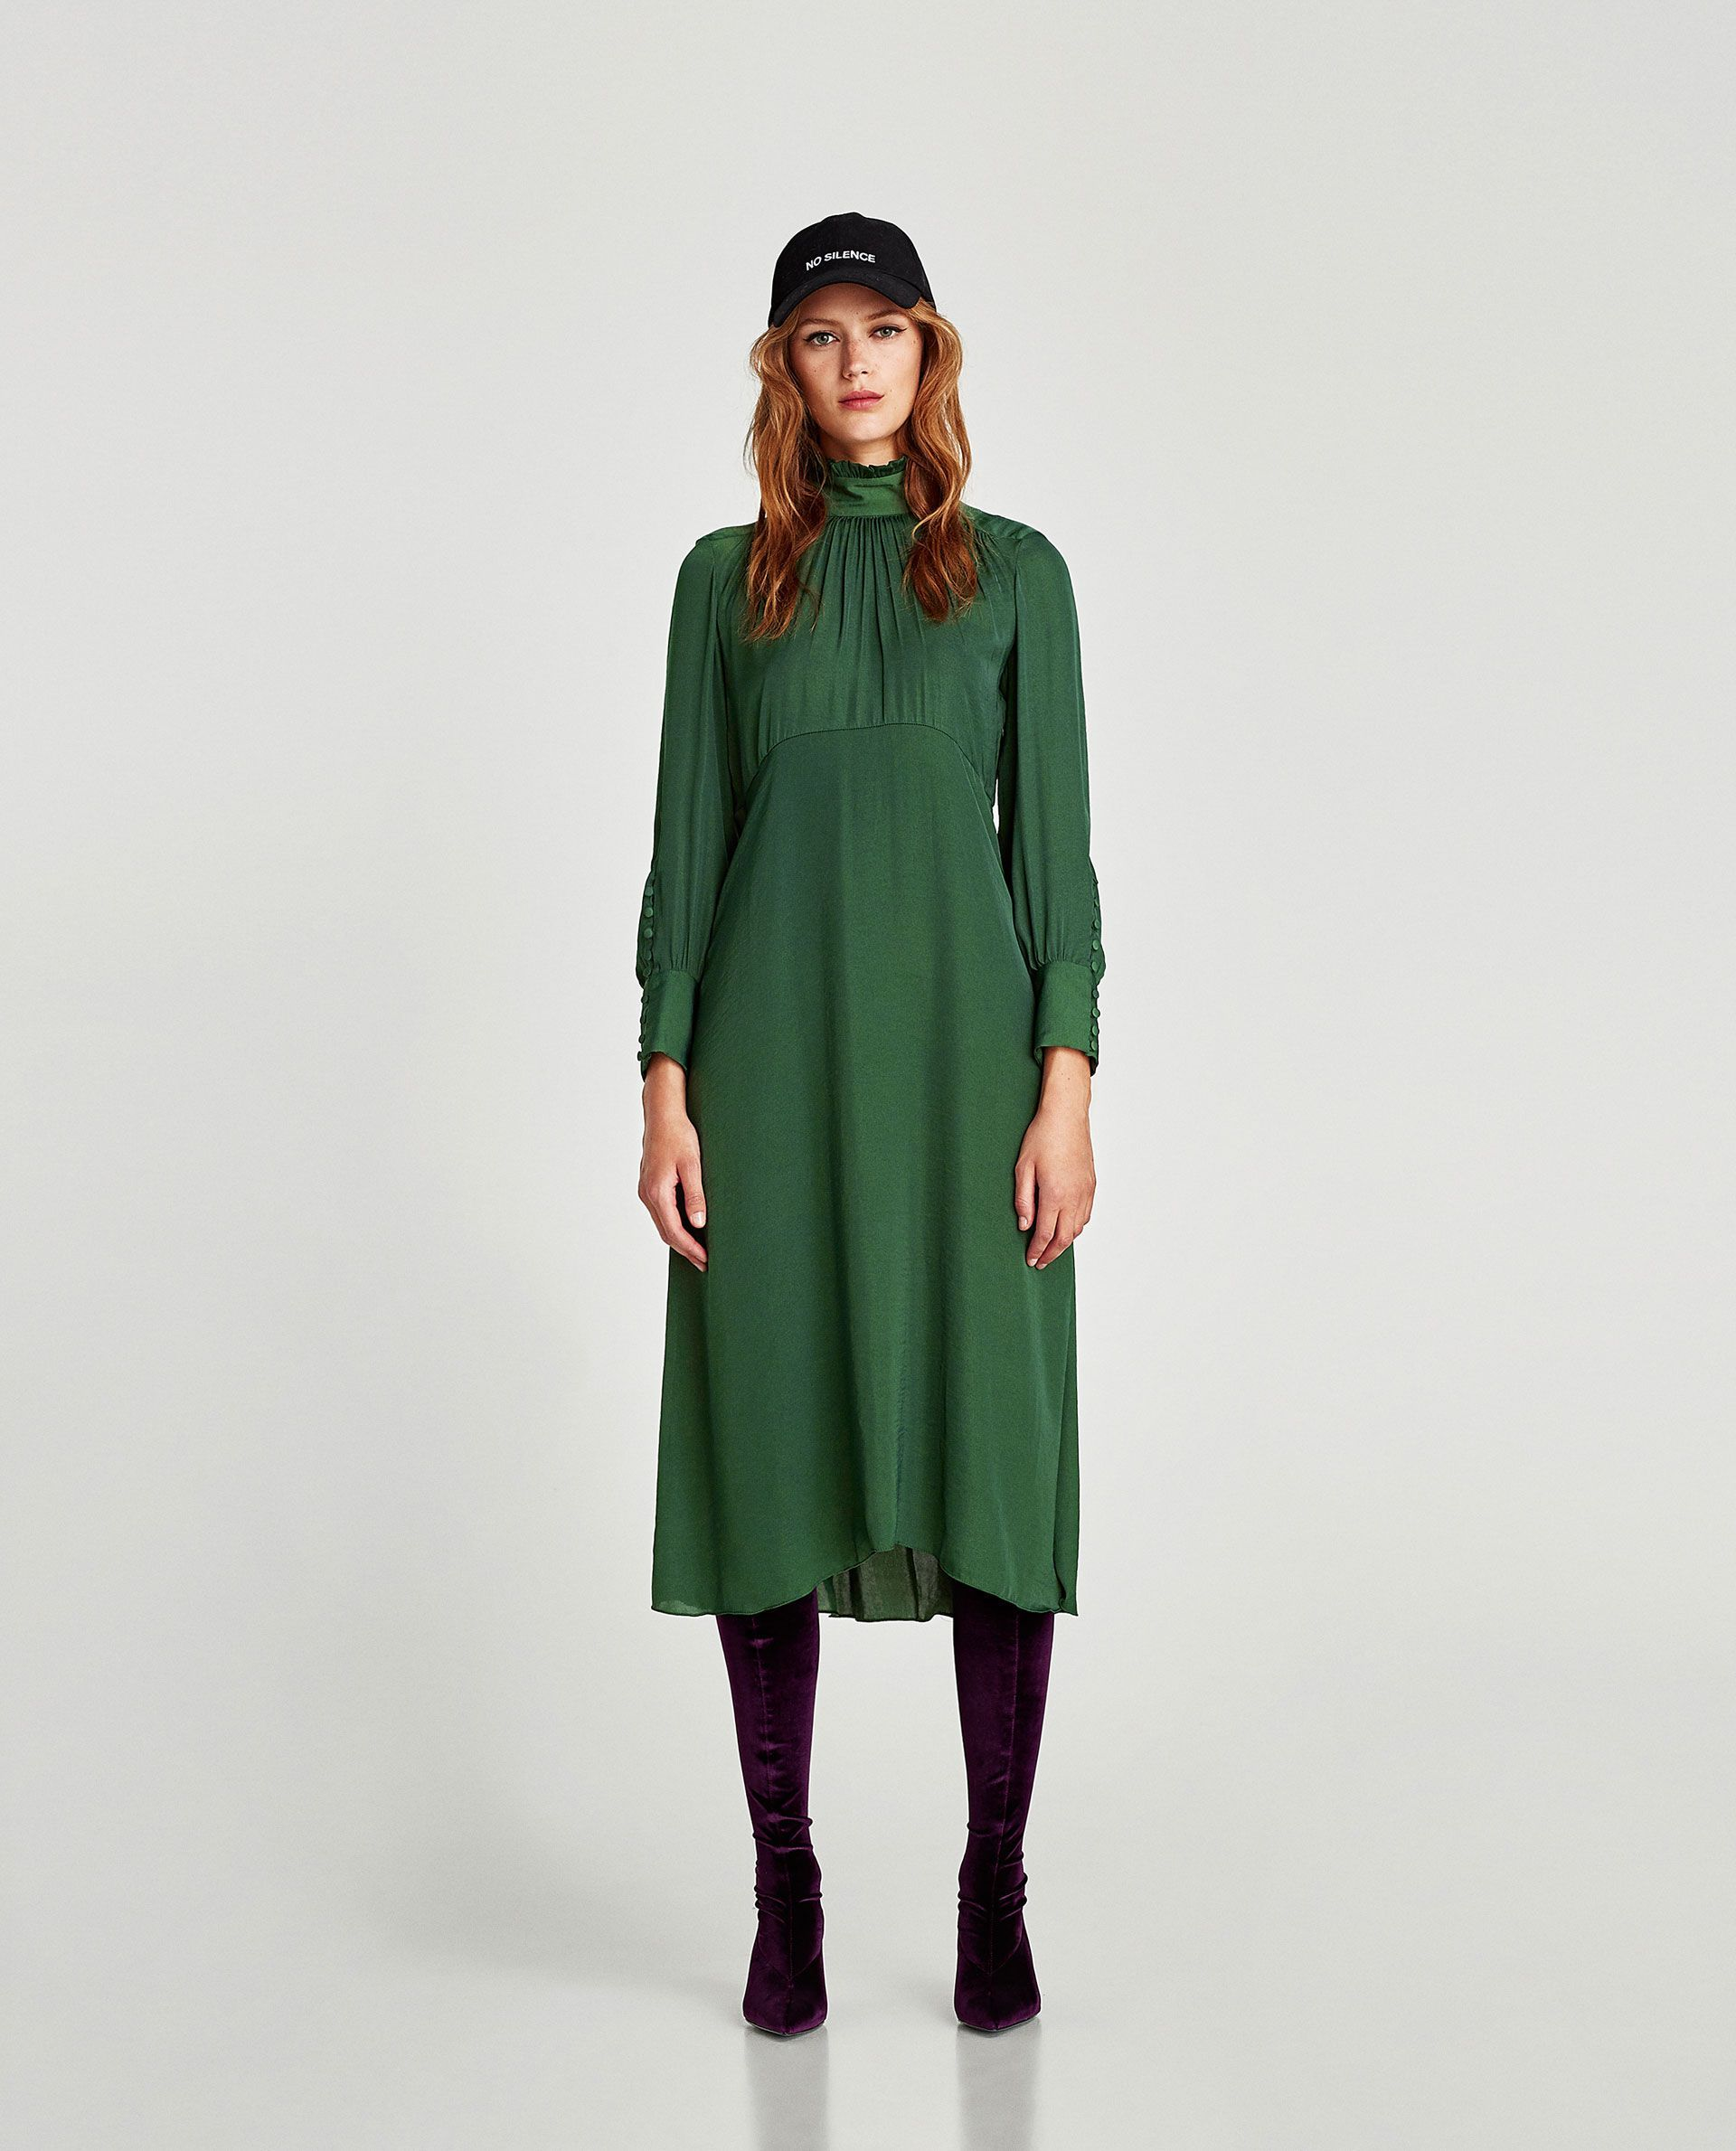 22 Versatile Dresses You Ll Live In This Fall Versatile Dresses Dresses Womens Midi Dresses